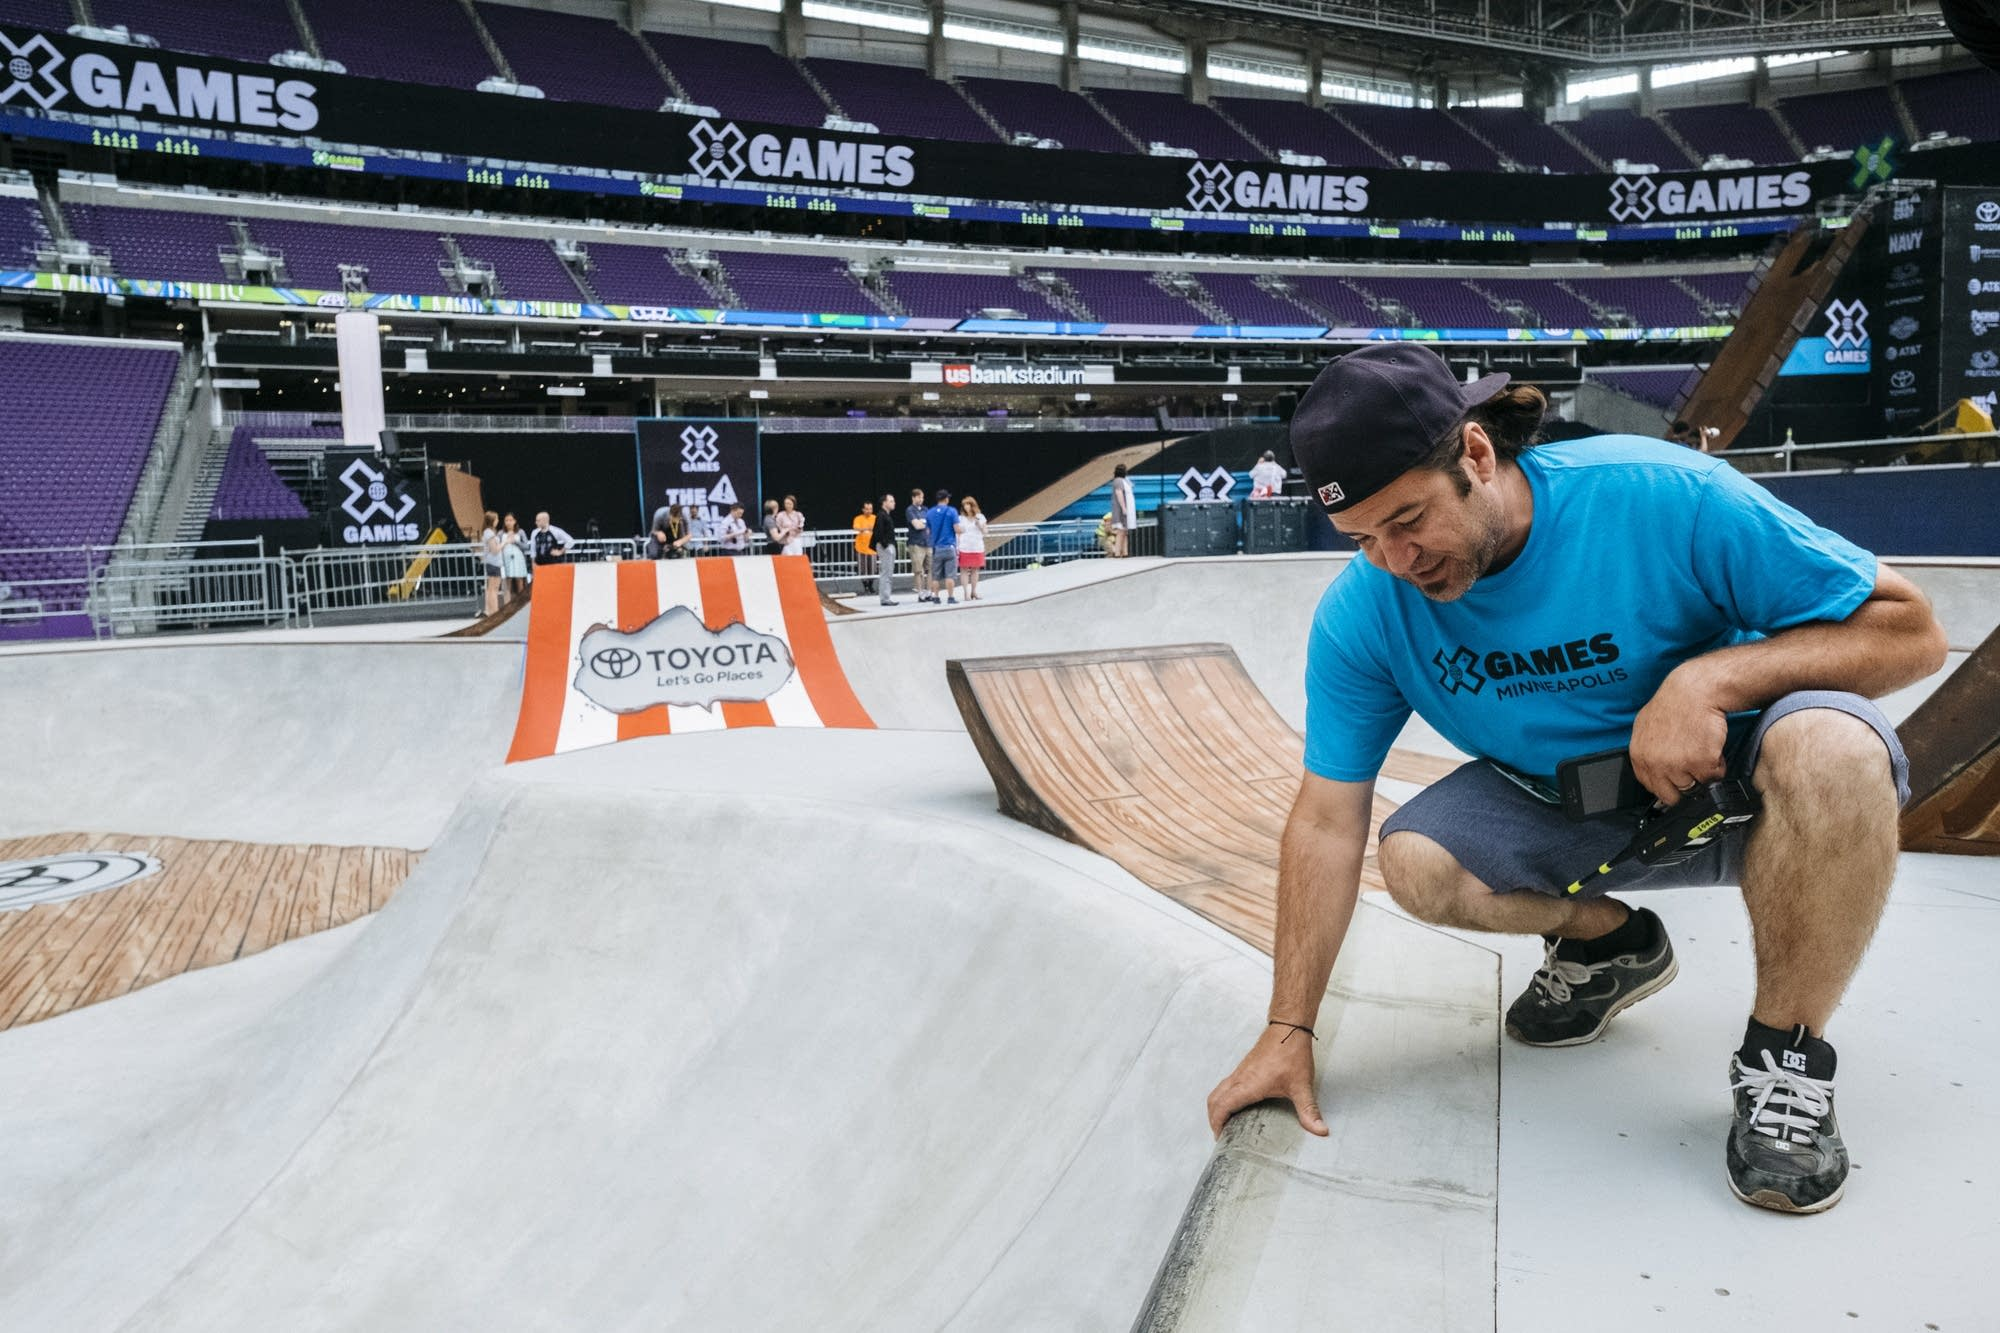 Rich Bigge shows off the Street Course.